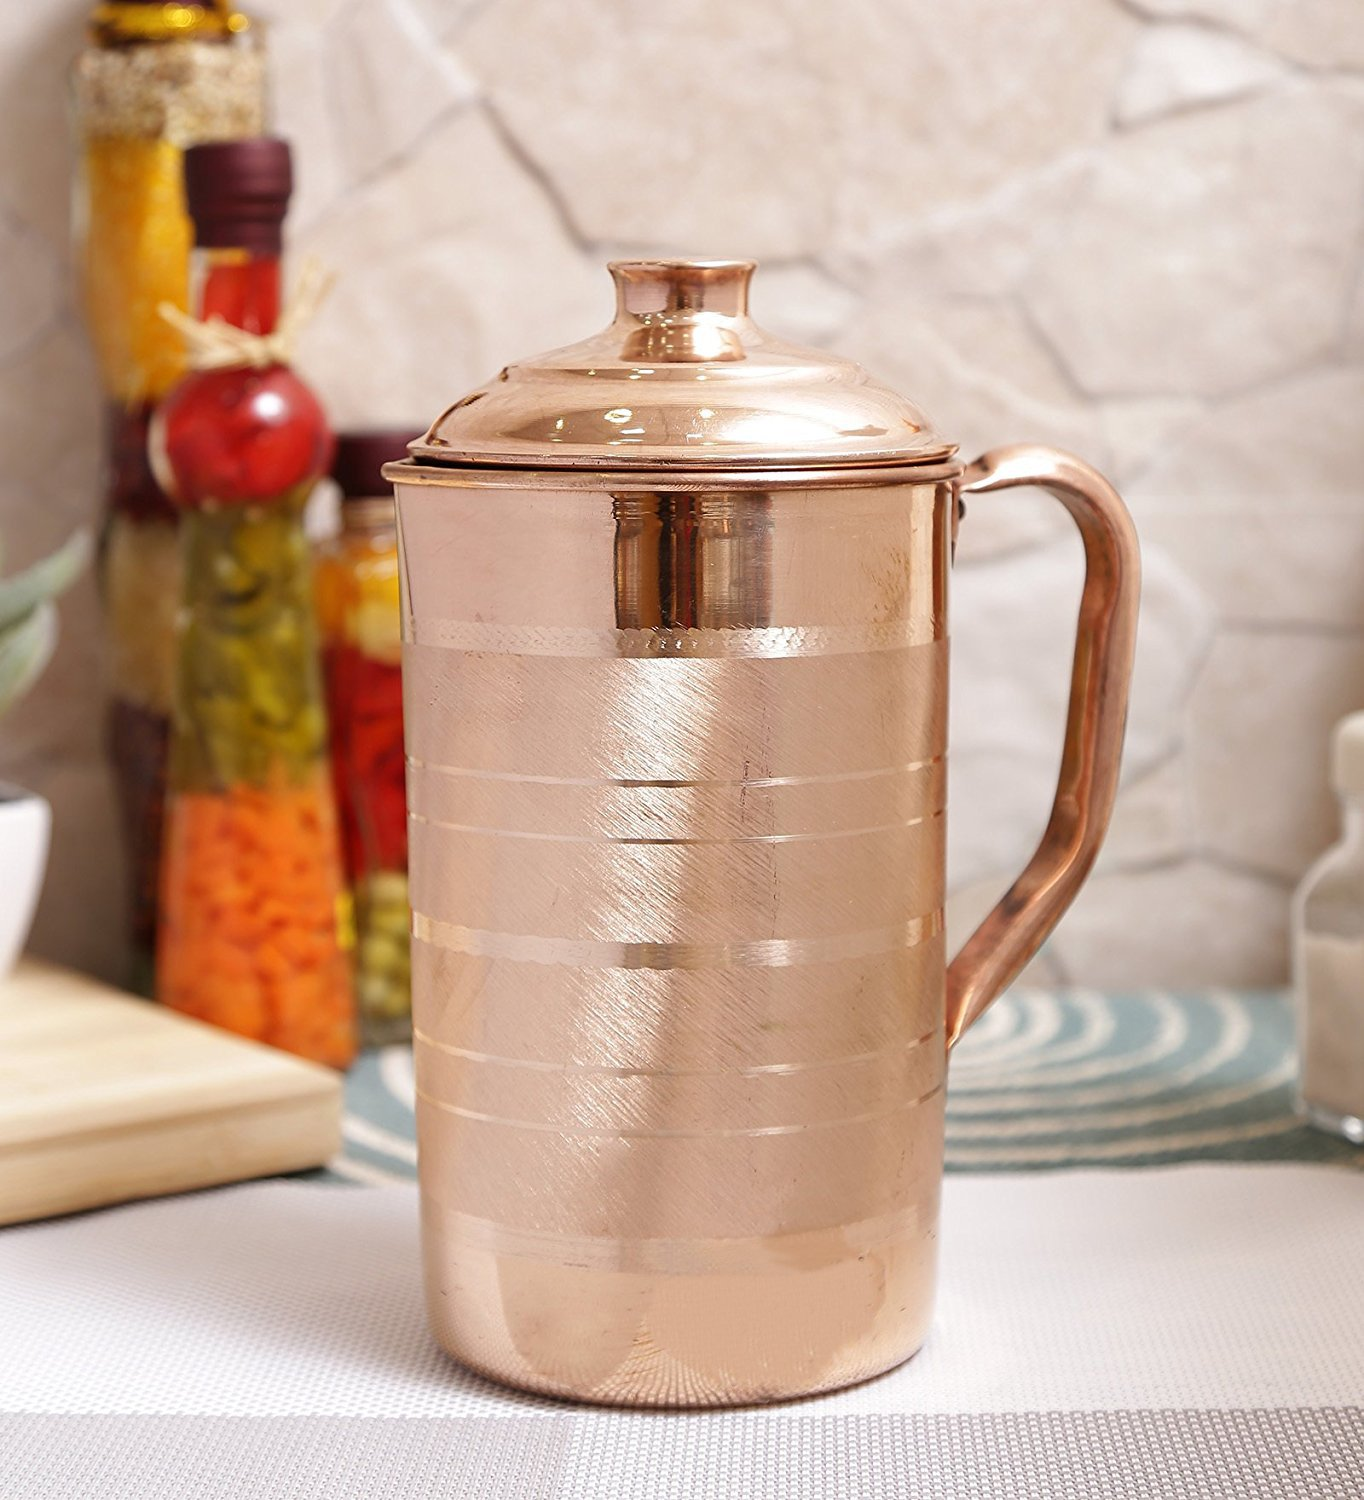 eCraftIndia Pure Copper Jug Pitcher for regular use of Drinking water, Yoga & Health Benefits, 1700 ML